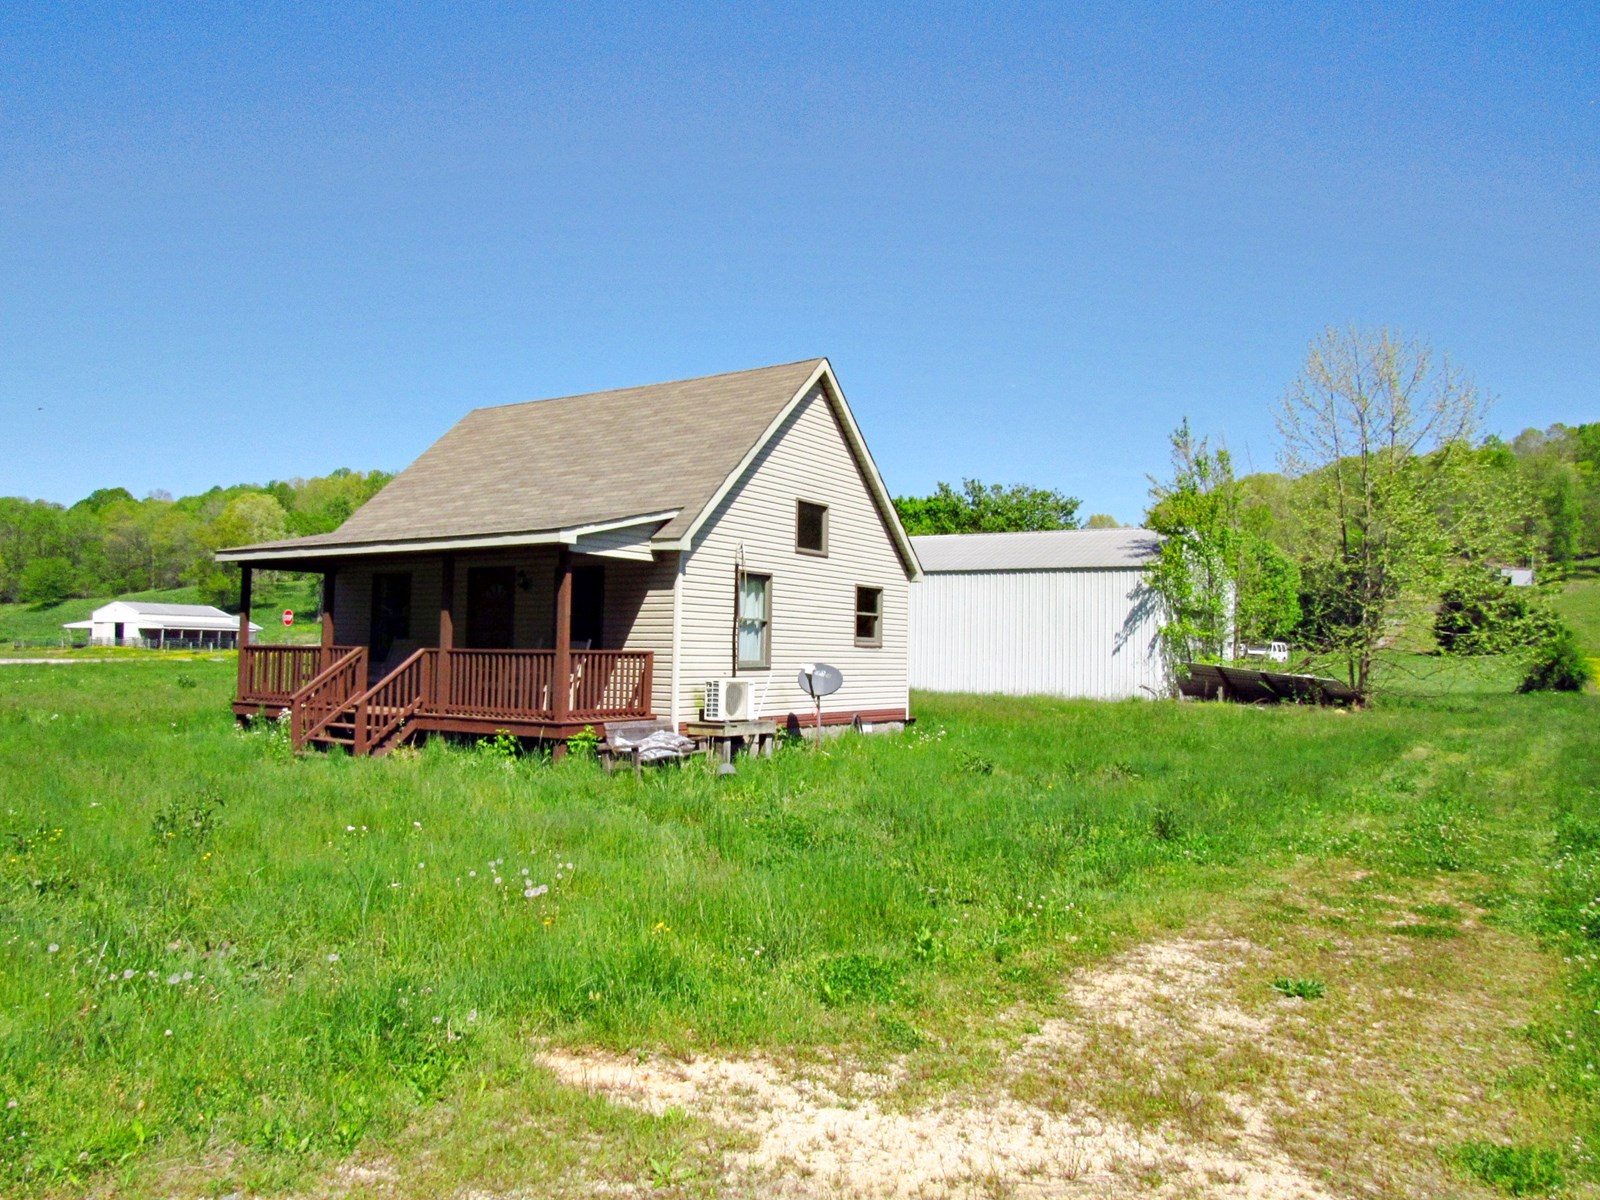 2 Bedroom 2 Bath Home on 1 Acre Lobelville, TN